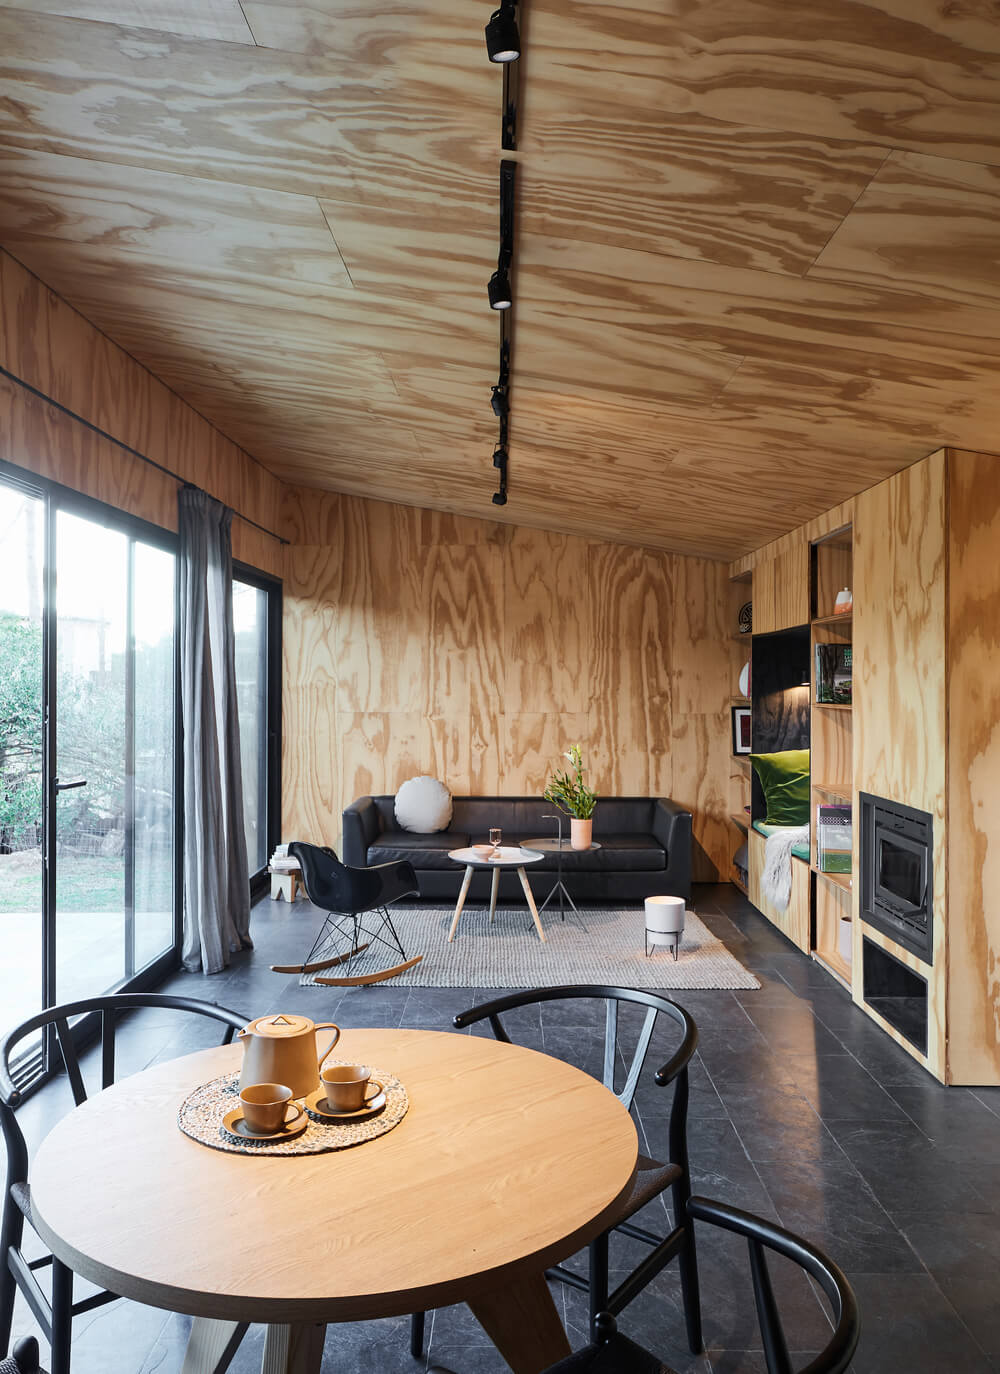 The great room has a consistent wooden tone on its walls and arched ceiling as well as the built-in wooden structure of the living room area.